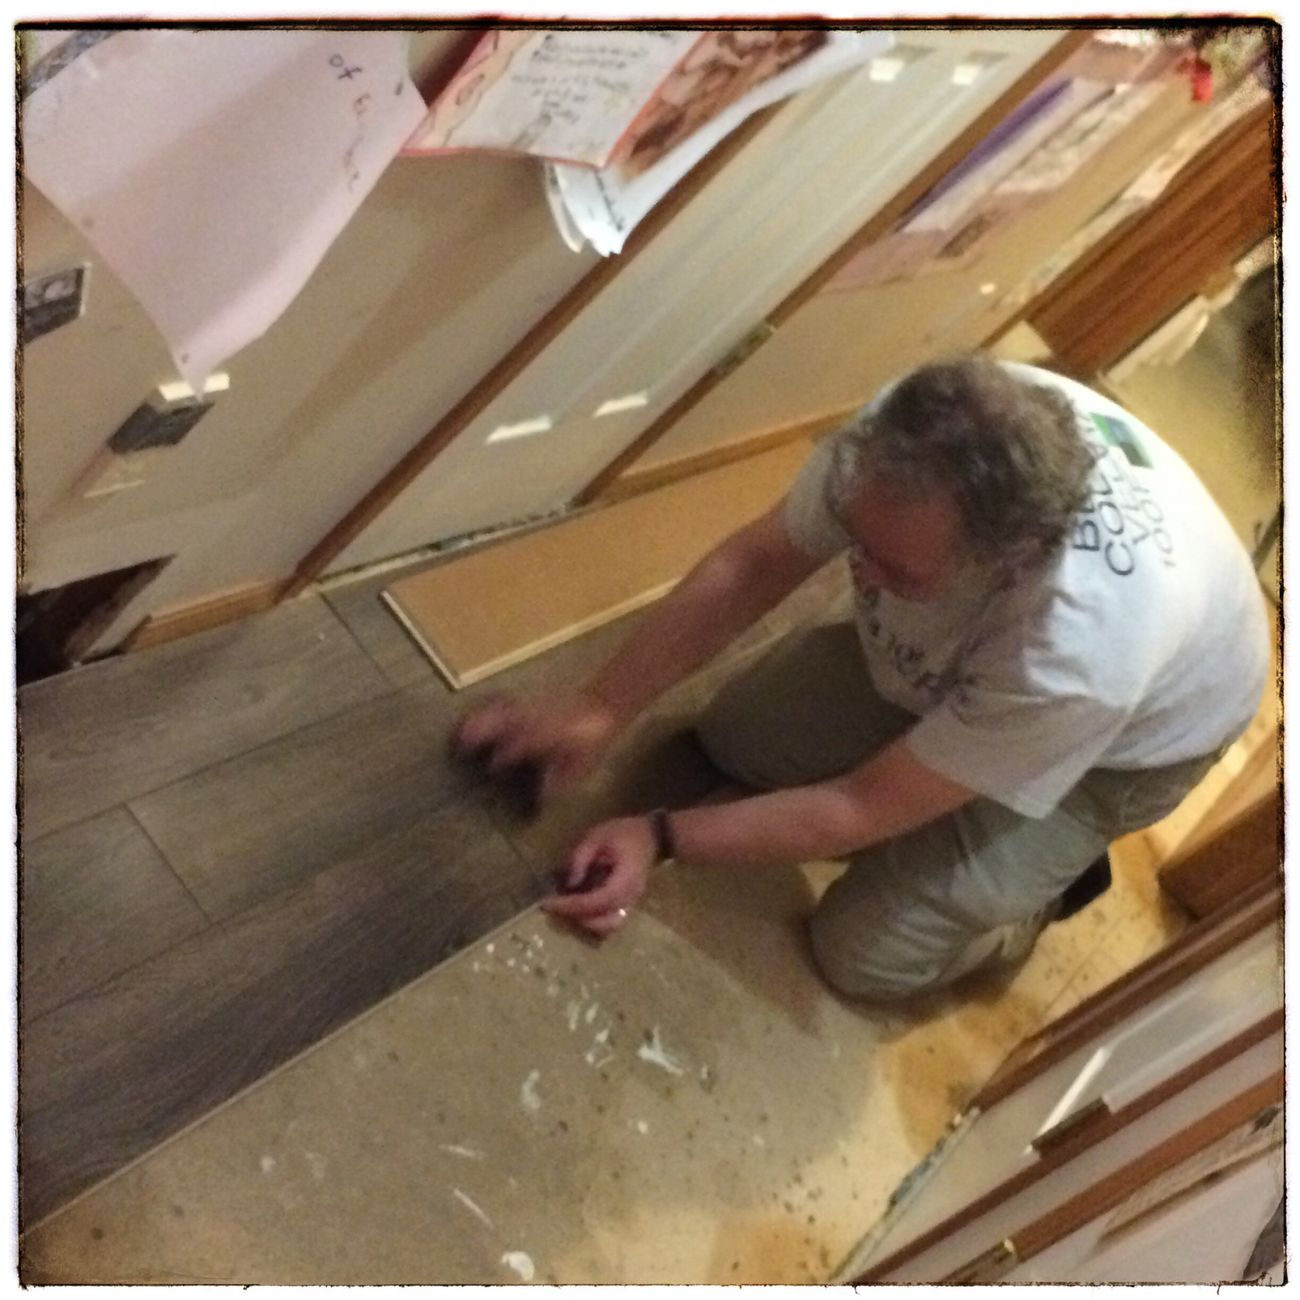 Cool took a photo of me as I installed a new laminate wood floor in our hallway this evening. #renovations Renovations Working Hard That's Me